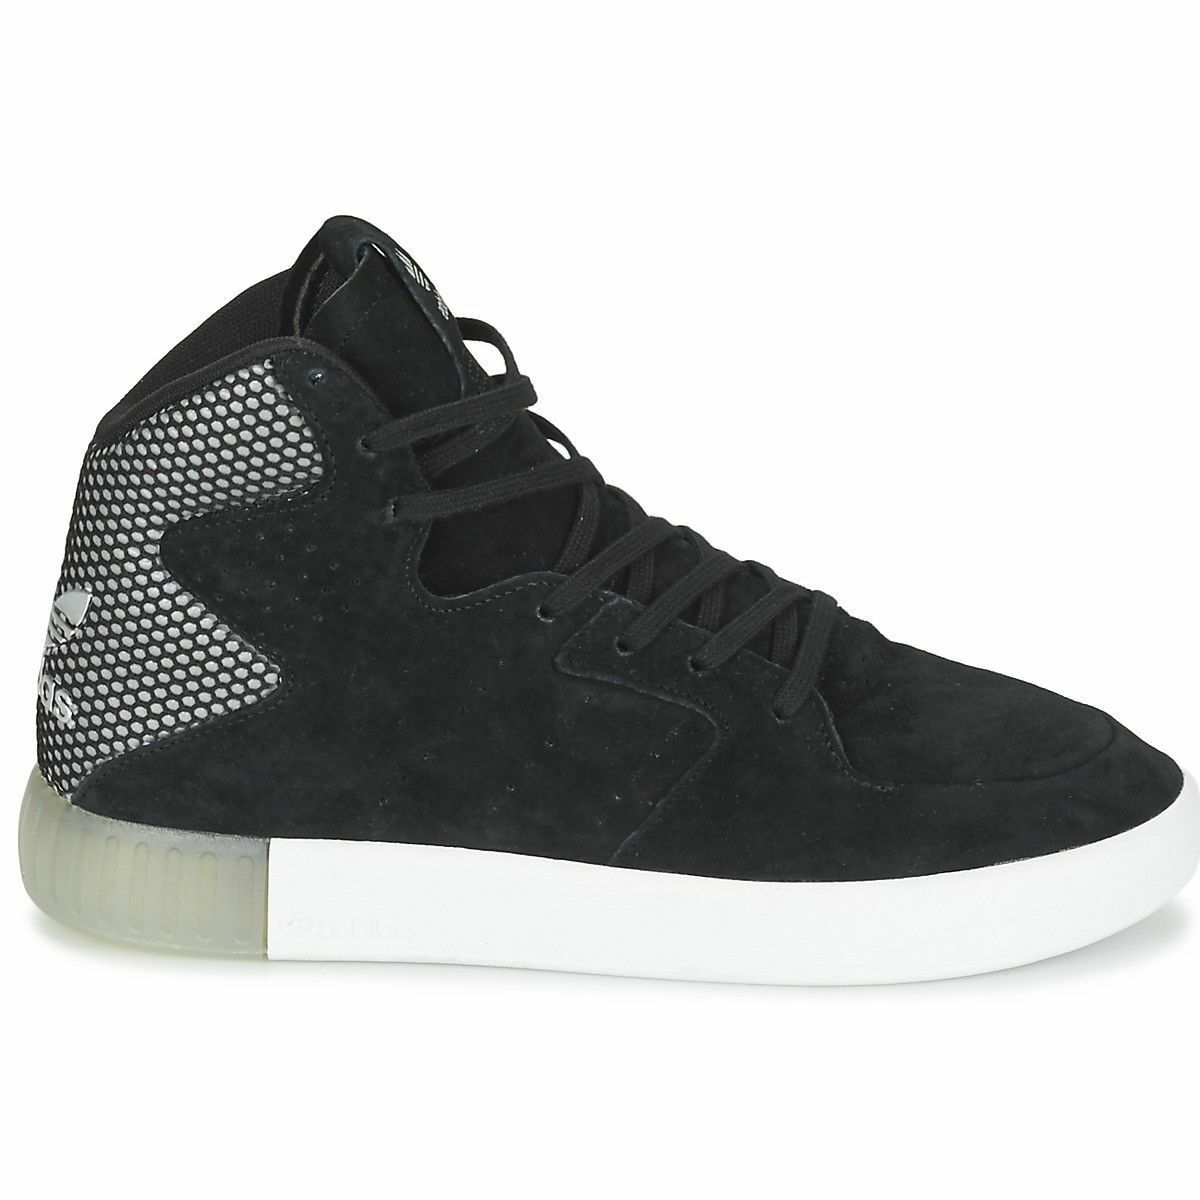 aaf226a3b NEW ADIDAS BLACK TUBULAR INVADER 2.0 HI-TOP TRAINERS TRAINERS TRAINERS  WOMEN S SIZE 7  135:Gentleman Lady:Seasonal Promotion 4601bd